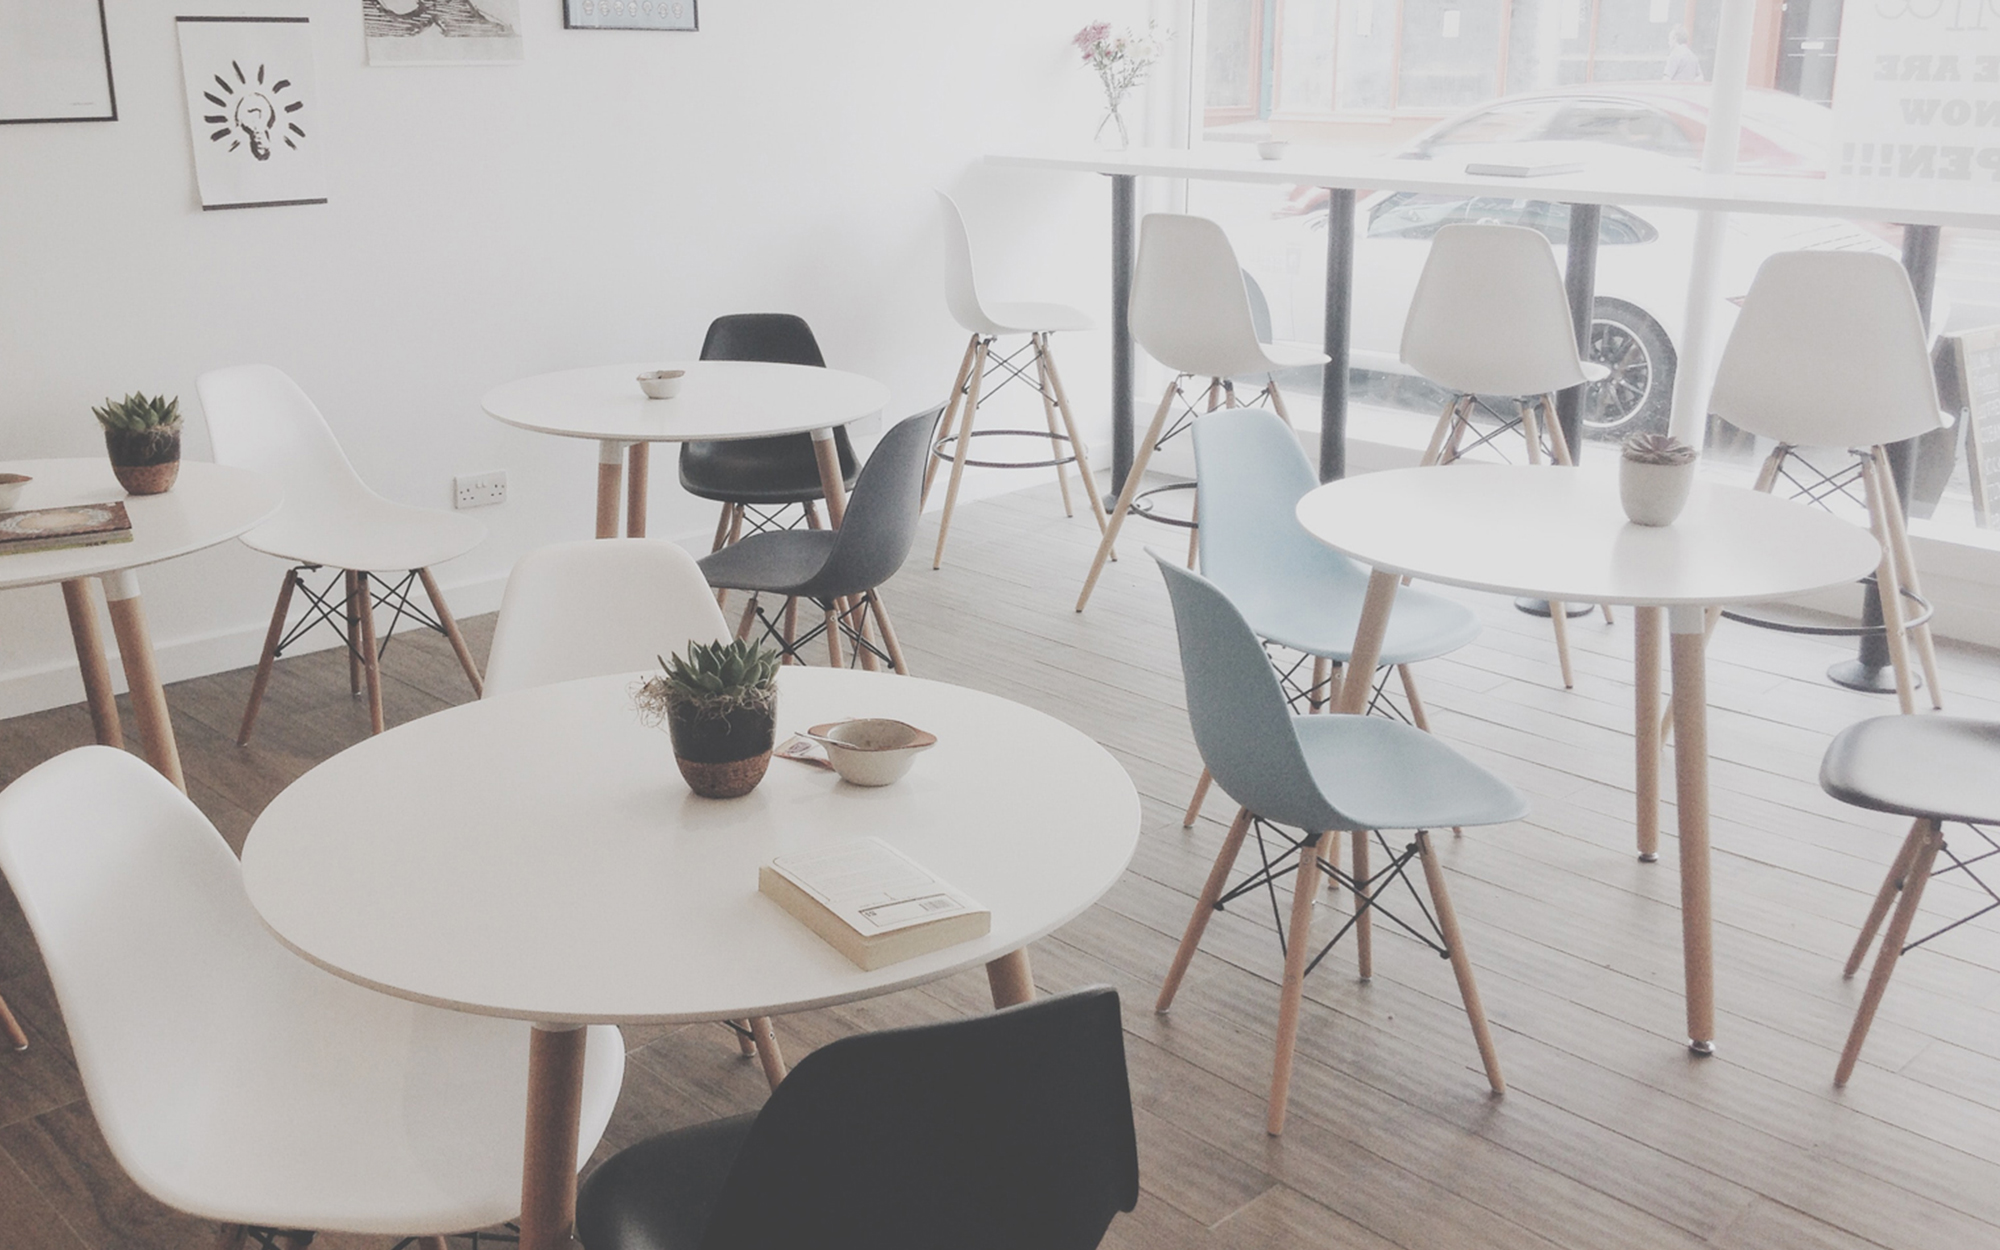 Eames DSW Chairs used in cafe business